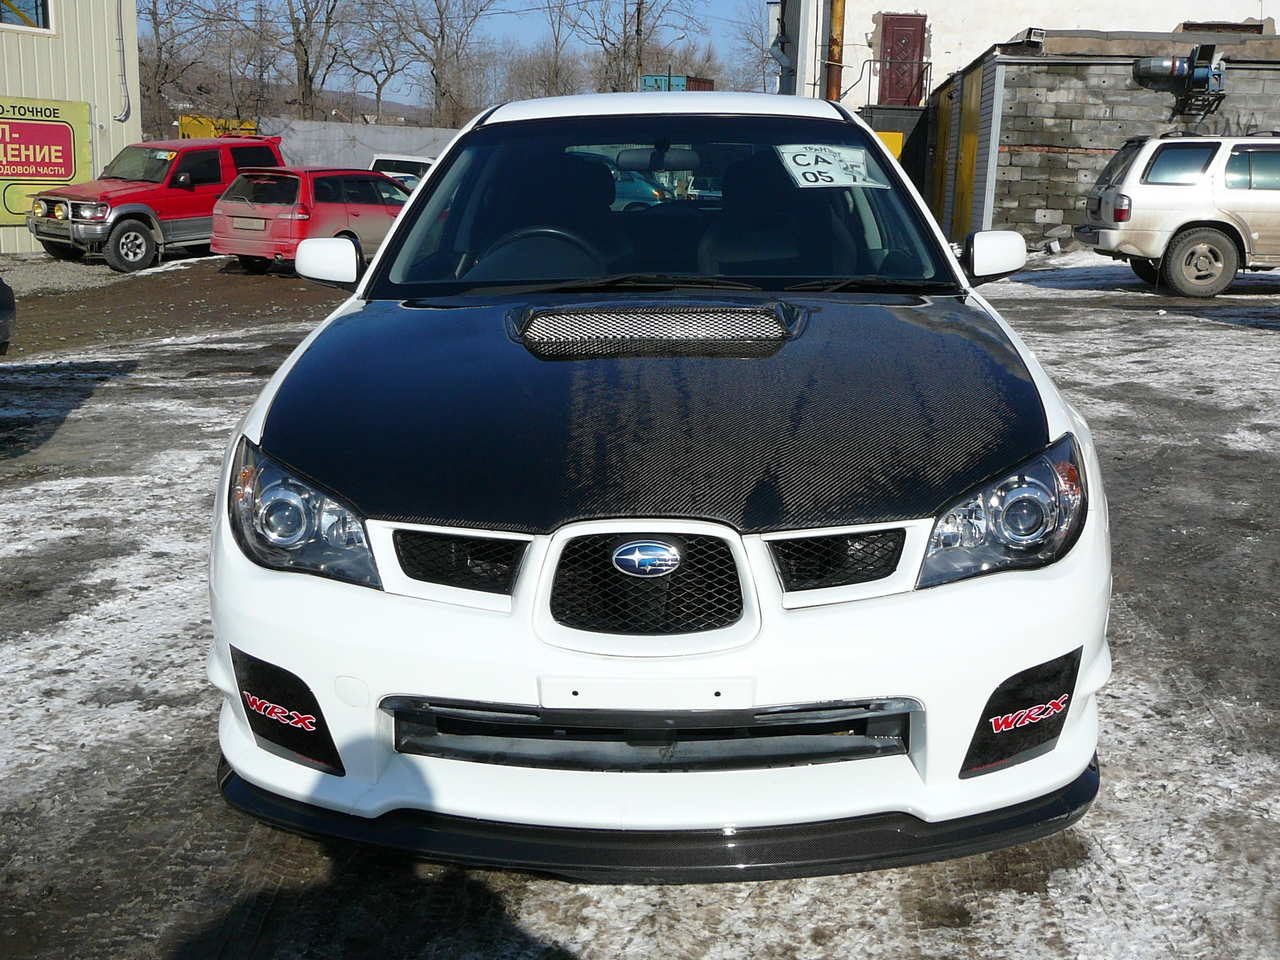 2004 subaru impreza wrx pics 2 0 gasoline automatic for sale. Black Bedroom Furniture Sets. Home Design Ideas